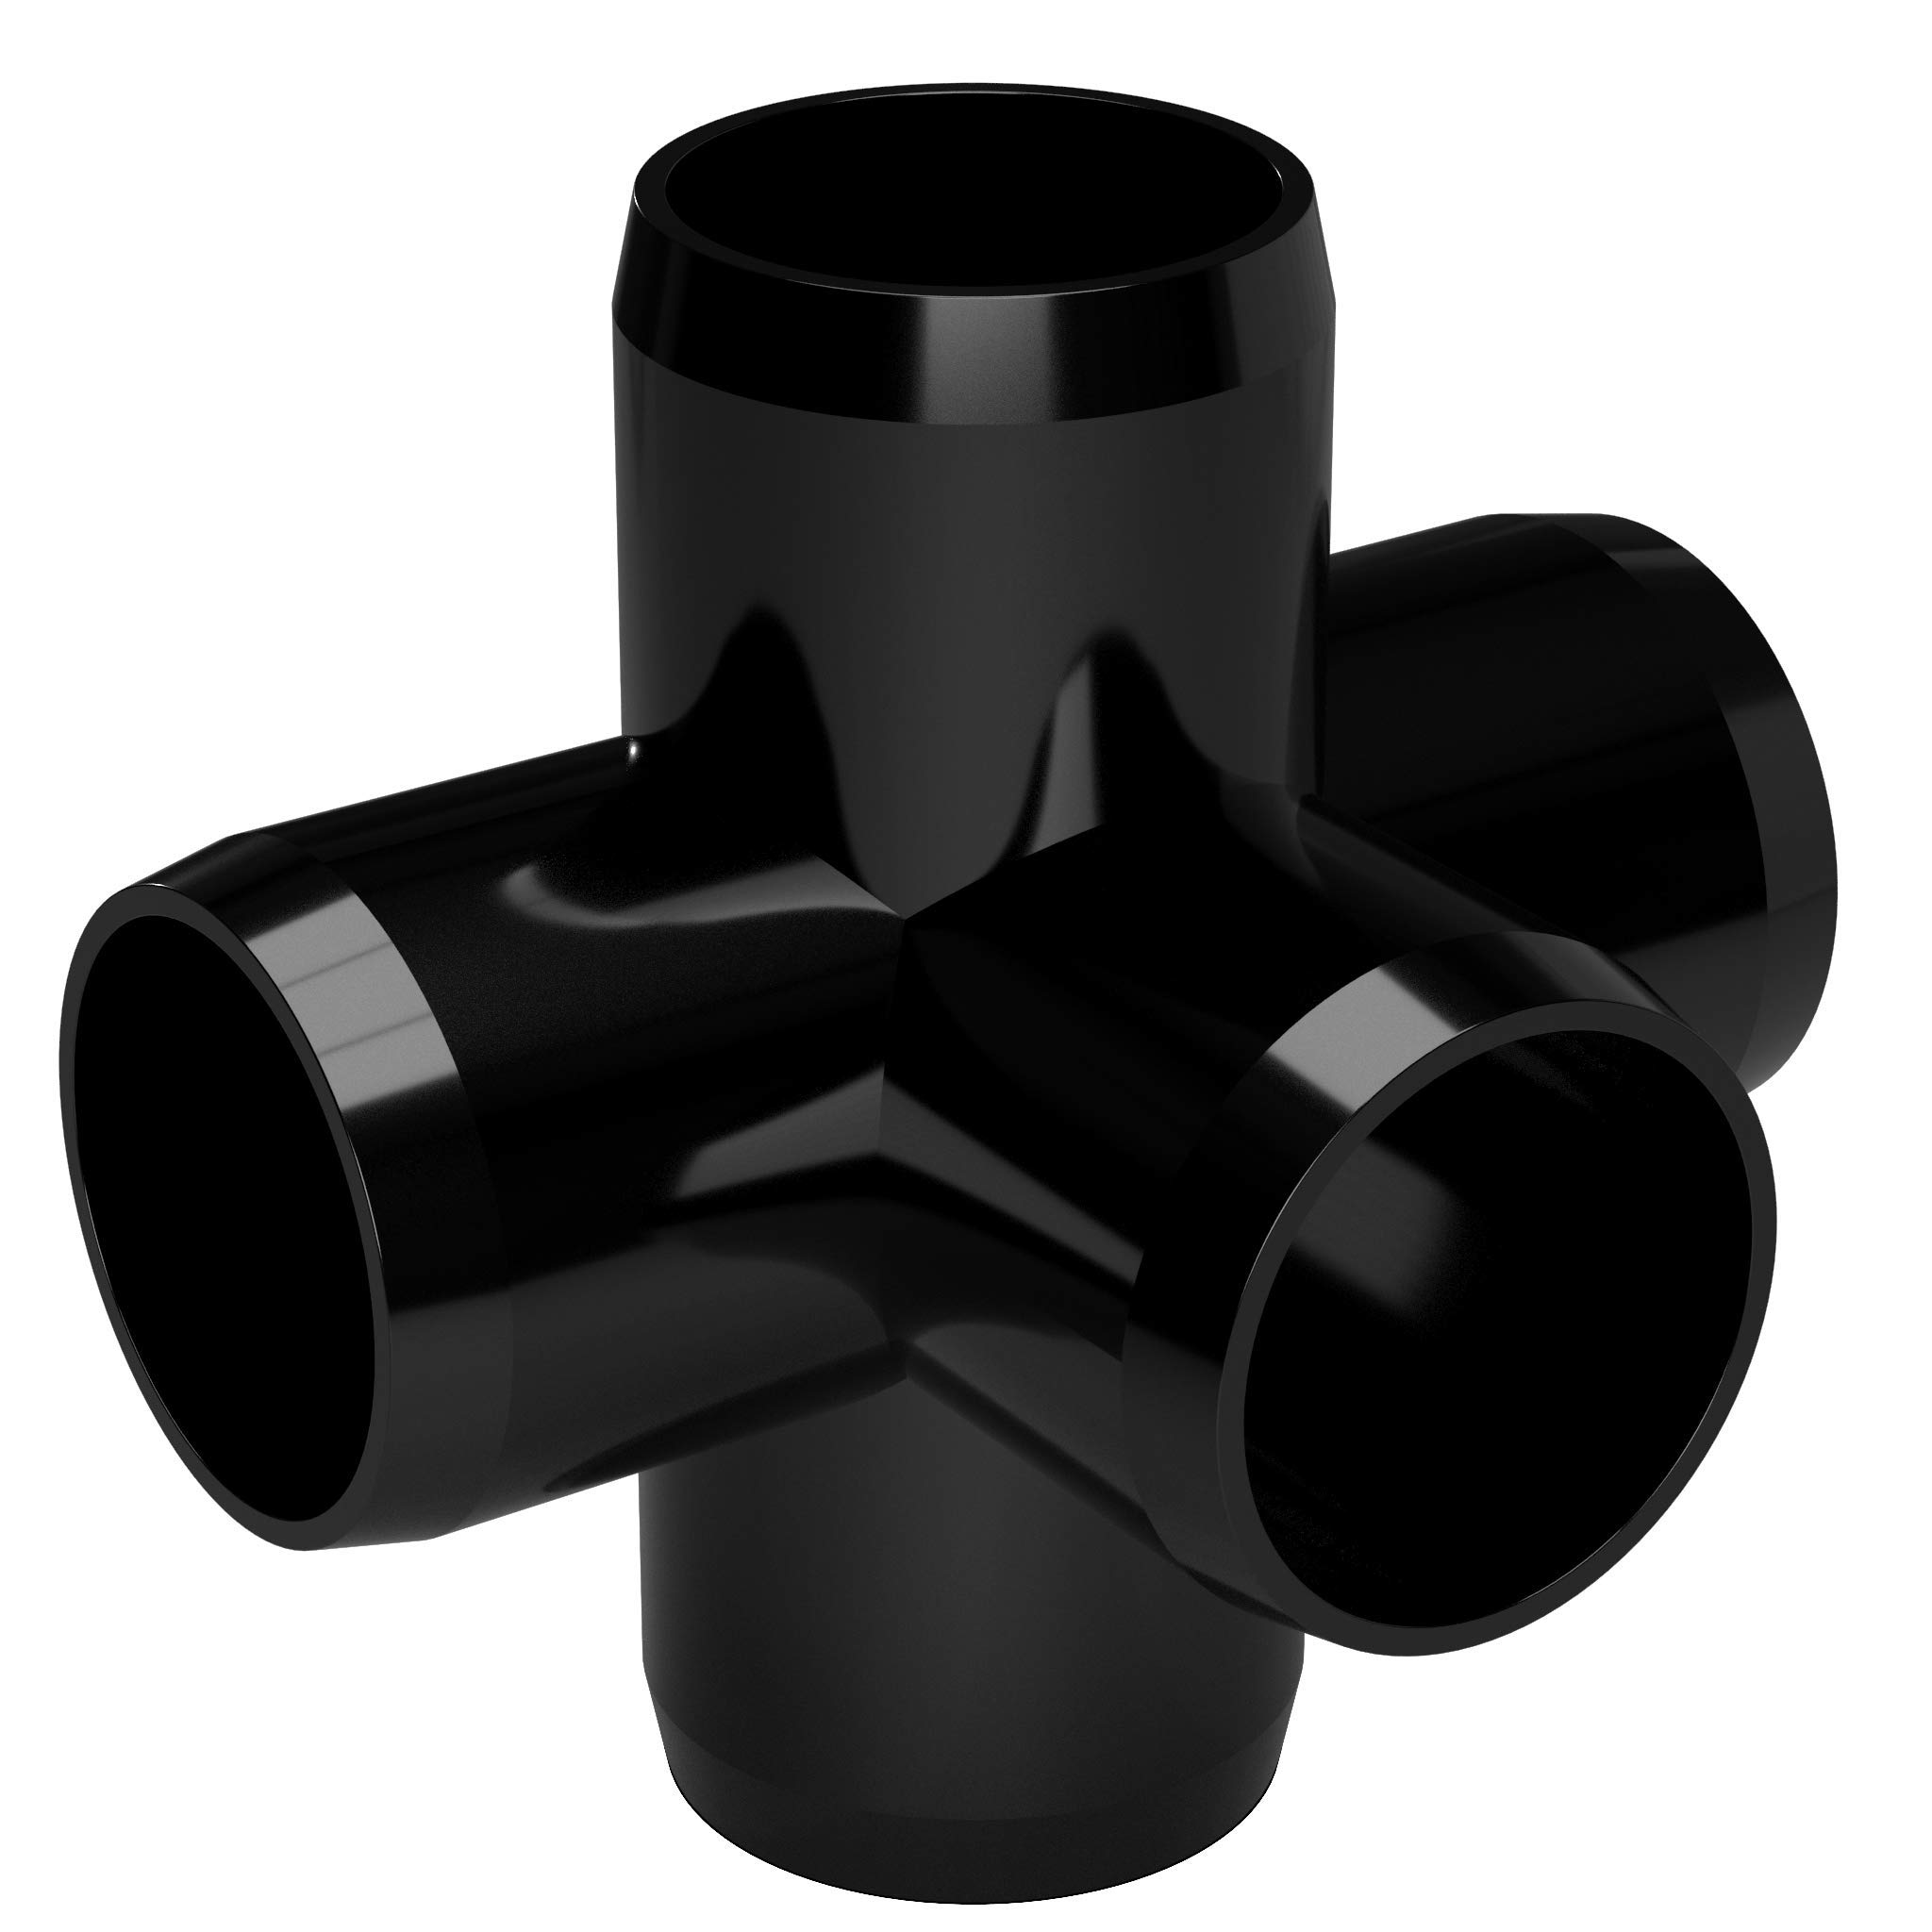 FORMUFIT F0015WC-BK-4 5-Way Cross PVC Fitting, Furniture Grade, 1'' Size, Black (Pack of 4) by FORMUFIT (Image #2)